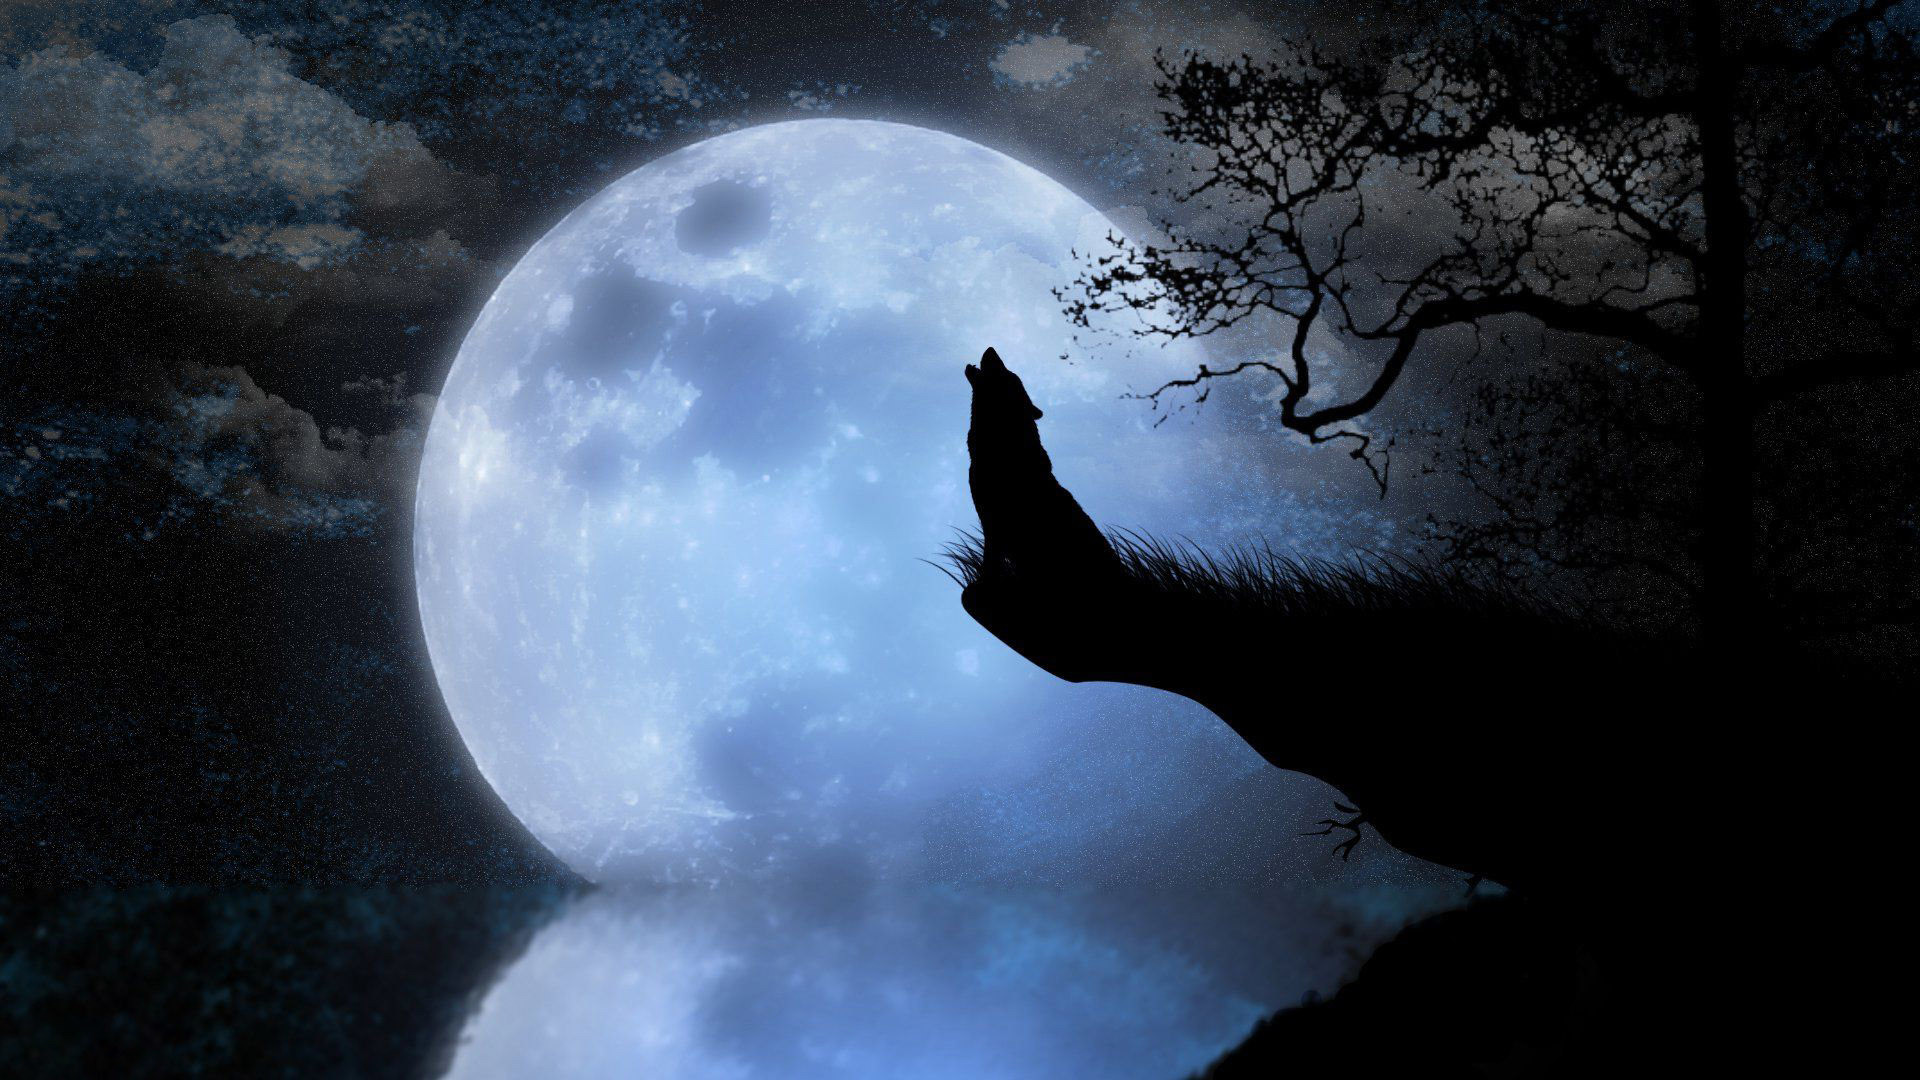 Howling wolf wallpaper 60 images - Wolf howling hd ...